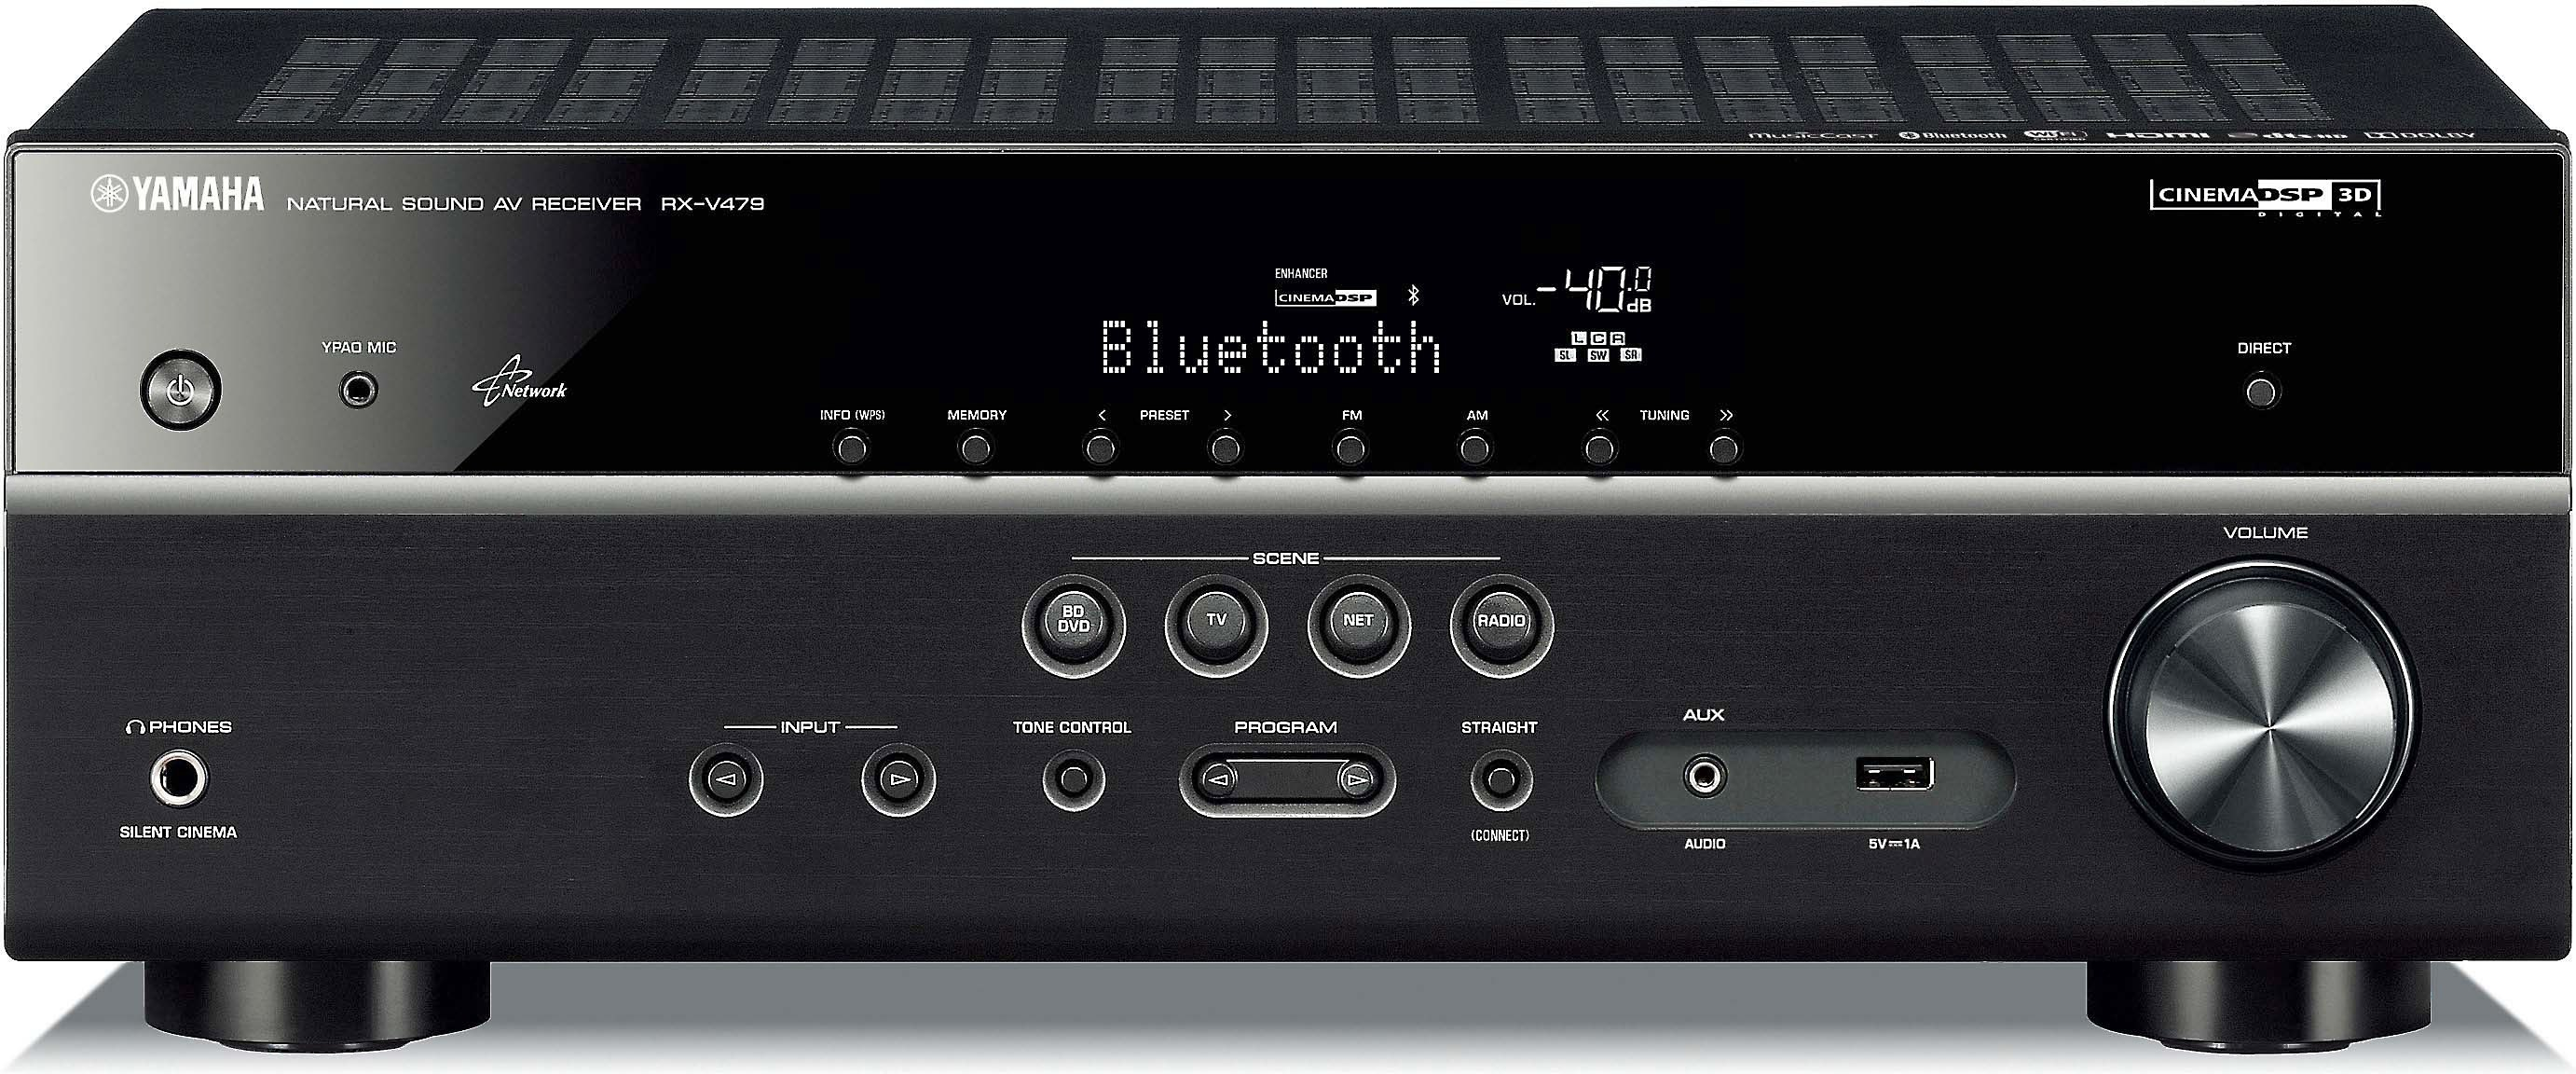 Yamaha Rx V479 51 Channel Home Theater Receiver With Wi Fi Bluetooth And Apple Airplay At Crutchfield